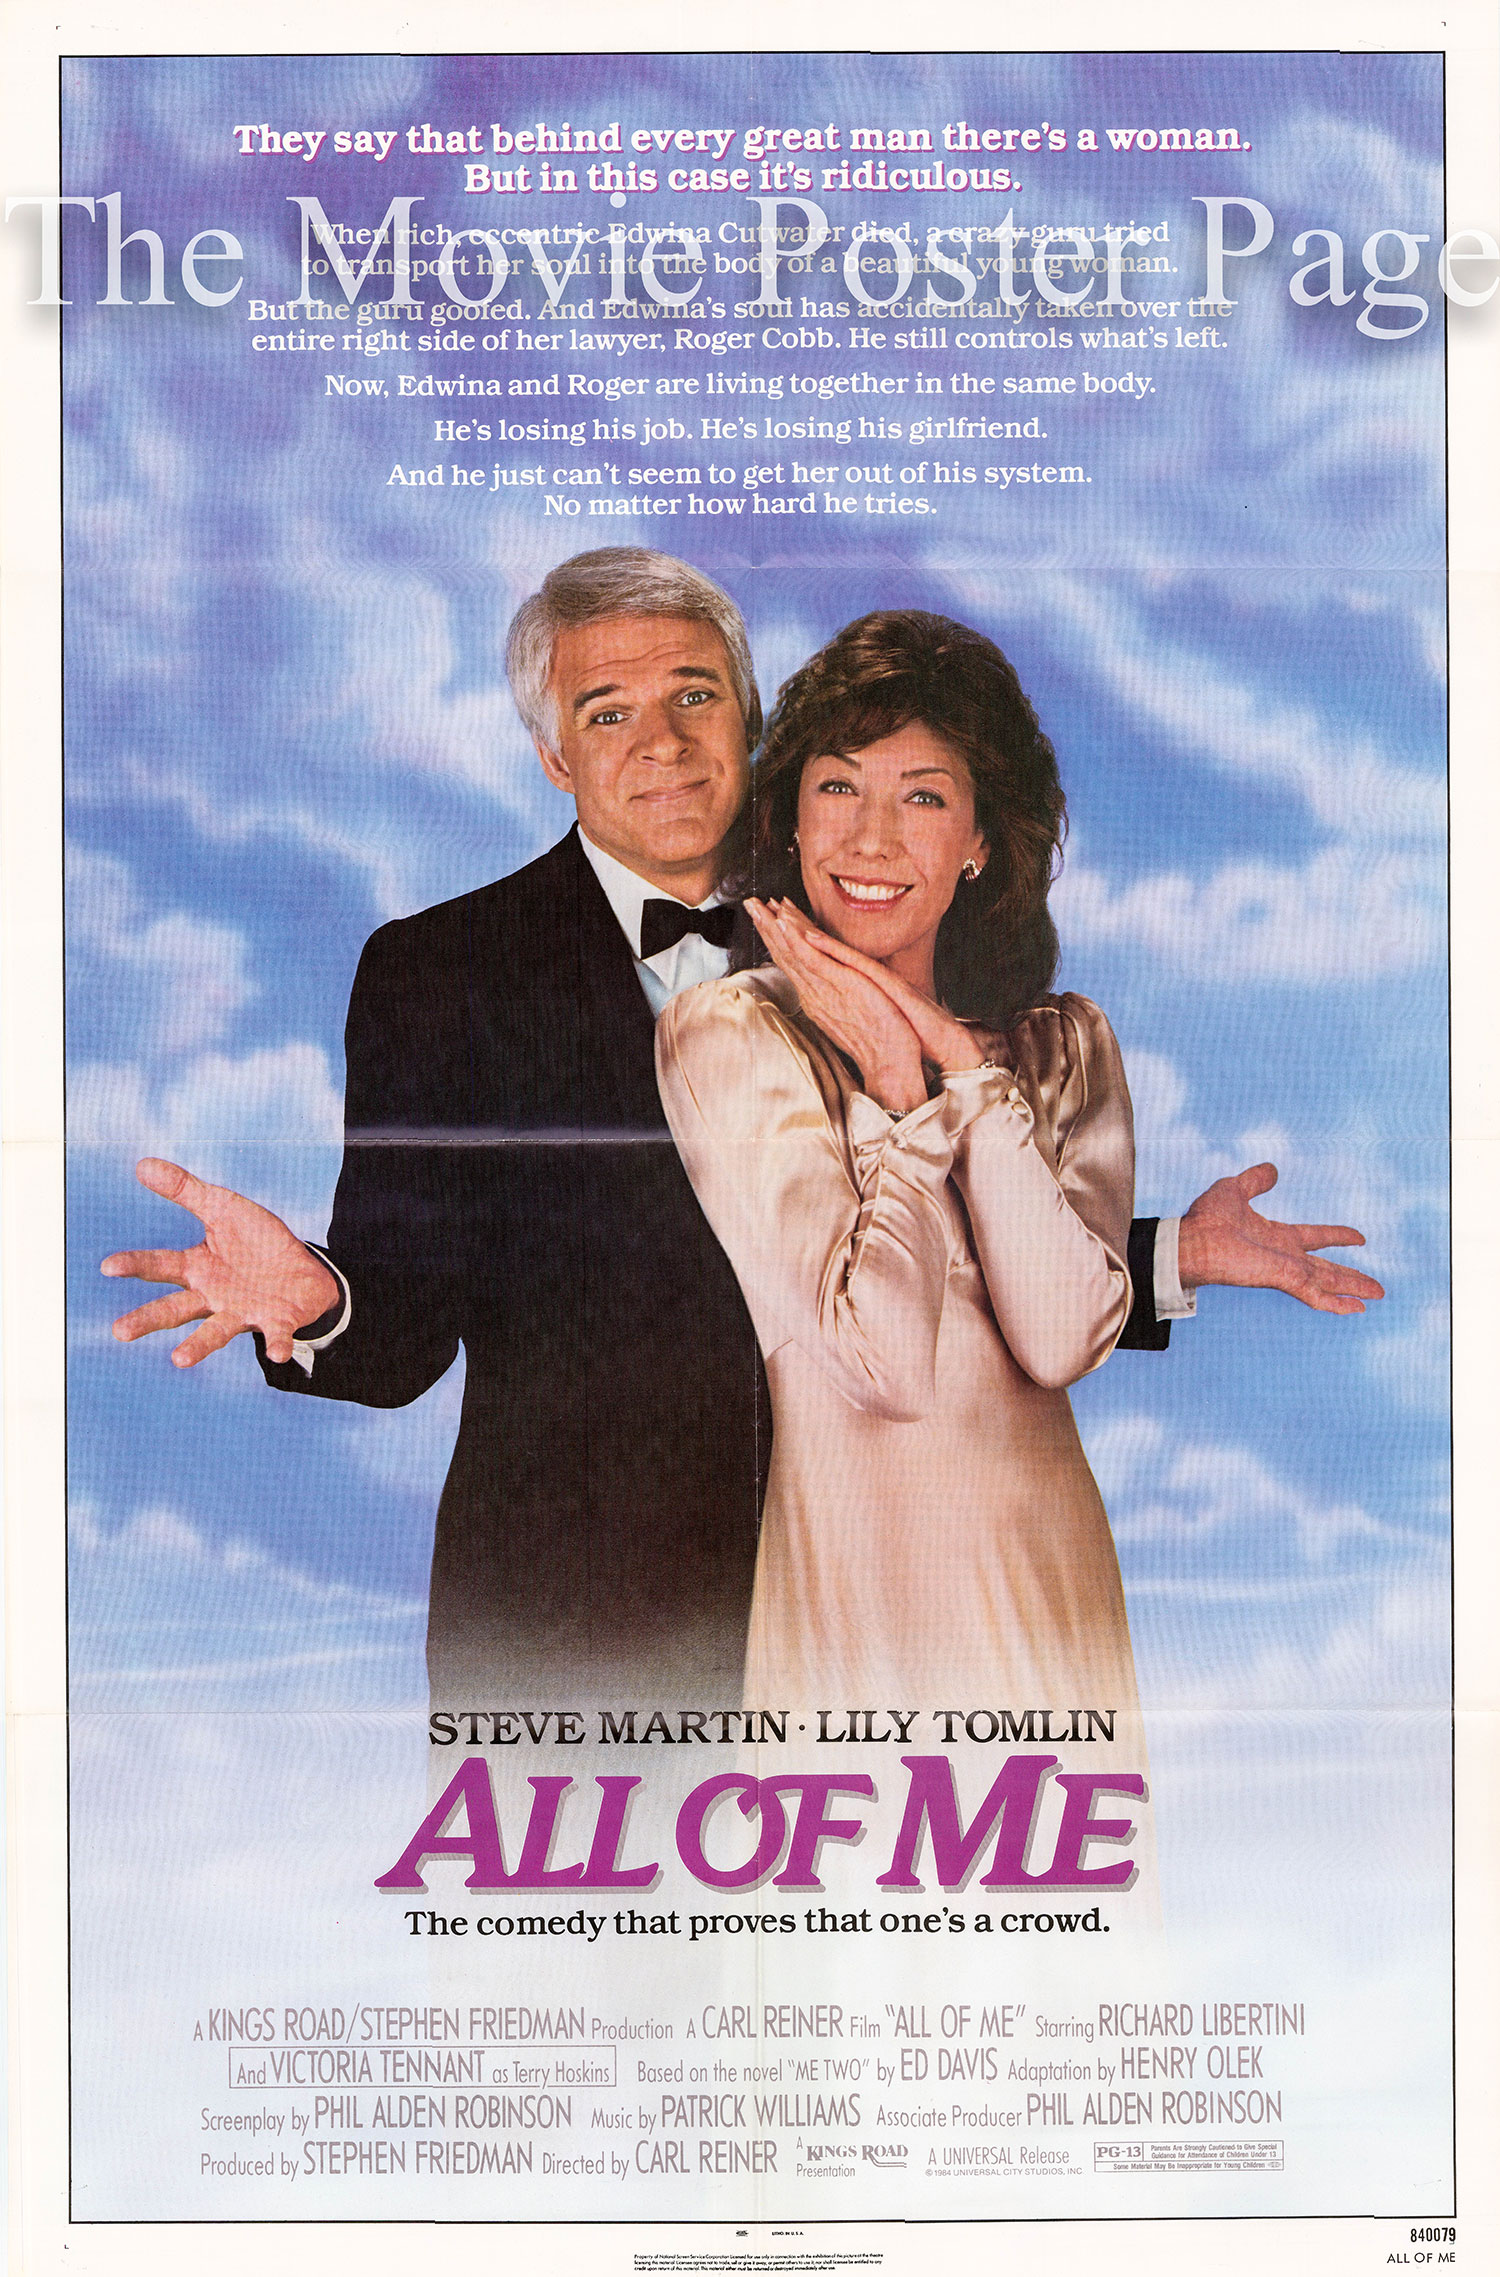 Pictured is a US one-sheet poster for the 1984 Carl Reiner film <i>All of Me</i> starring Steve Martin.